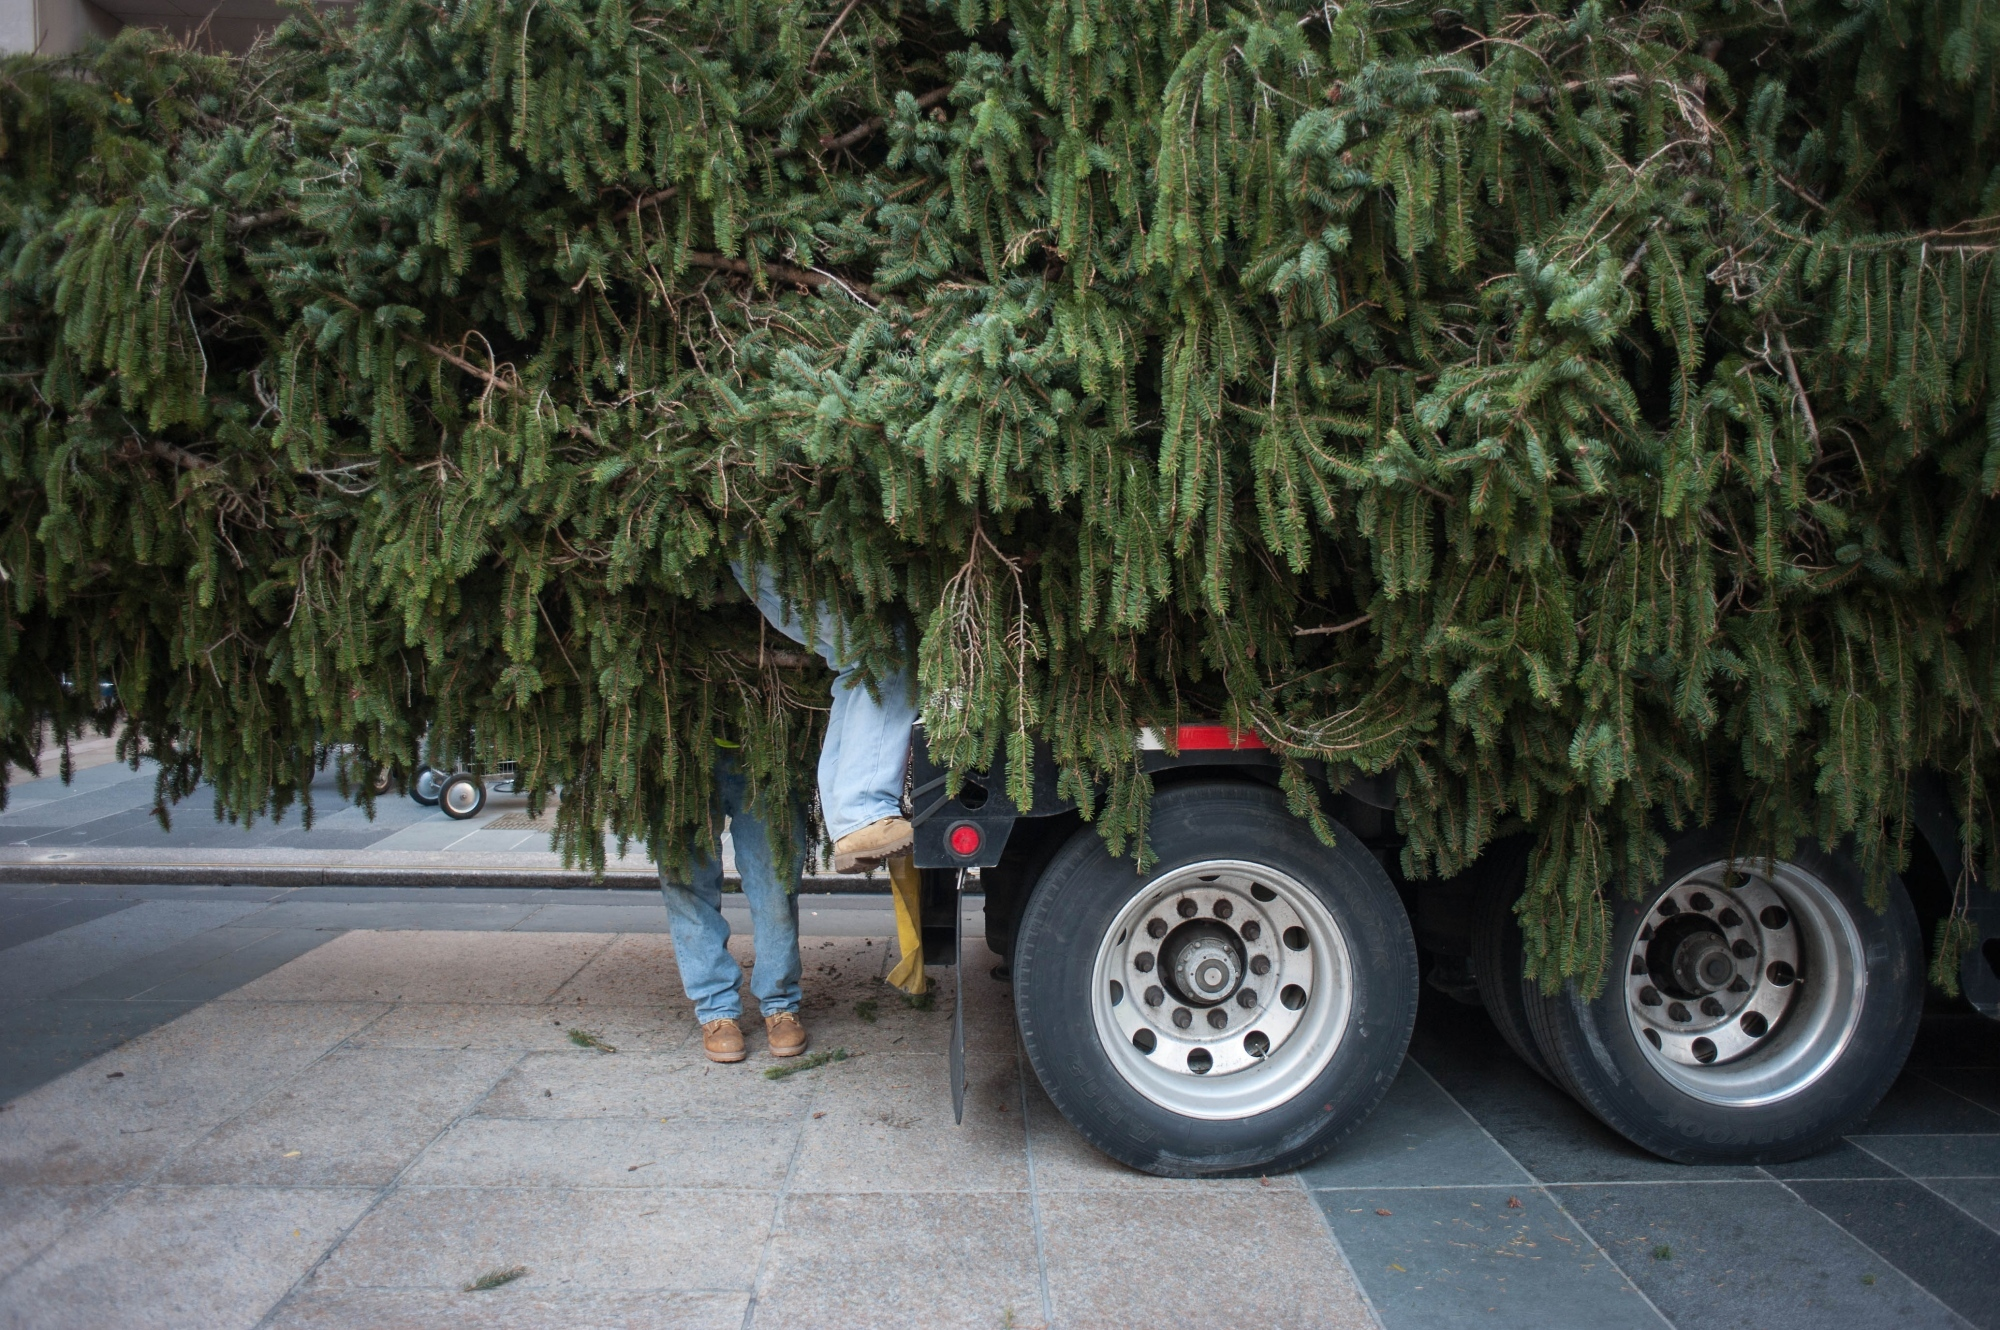 The Rockefeller Center Christmas Tree arrives on November 12th, 2016, at 7A.M. The tree is 94 ft tall and 56 ft wide, weighing at around 14 tons. As soon as the tree arrives onto Rockefeller Plaza, workers climb in to cut off the ropes.